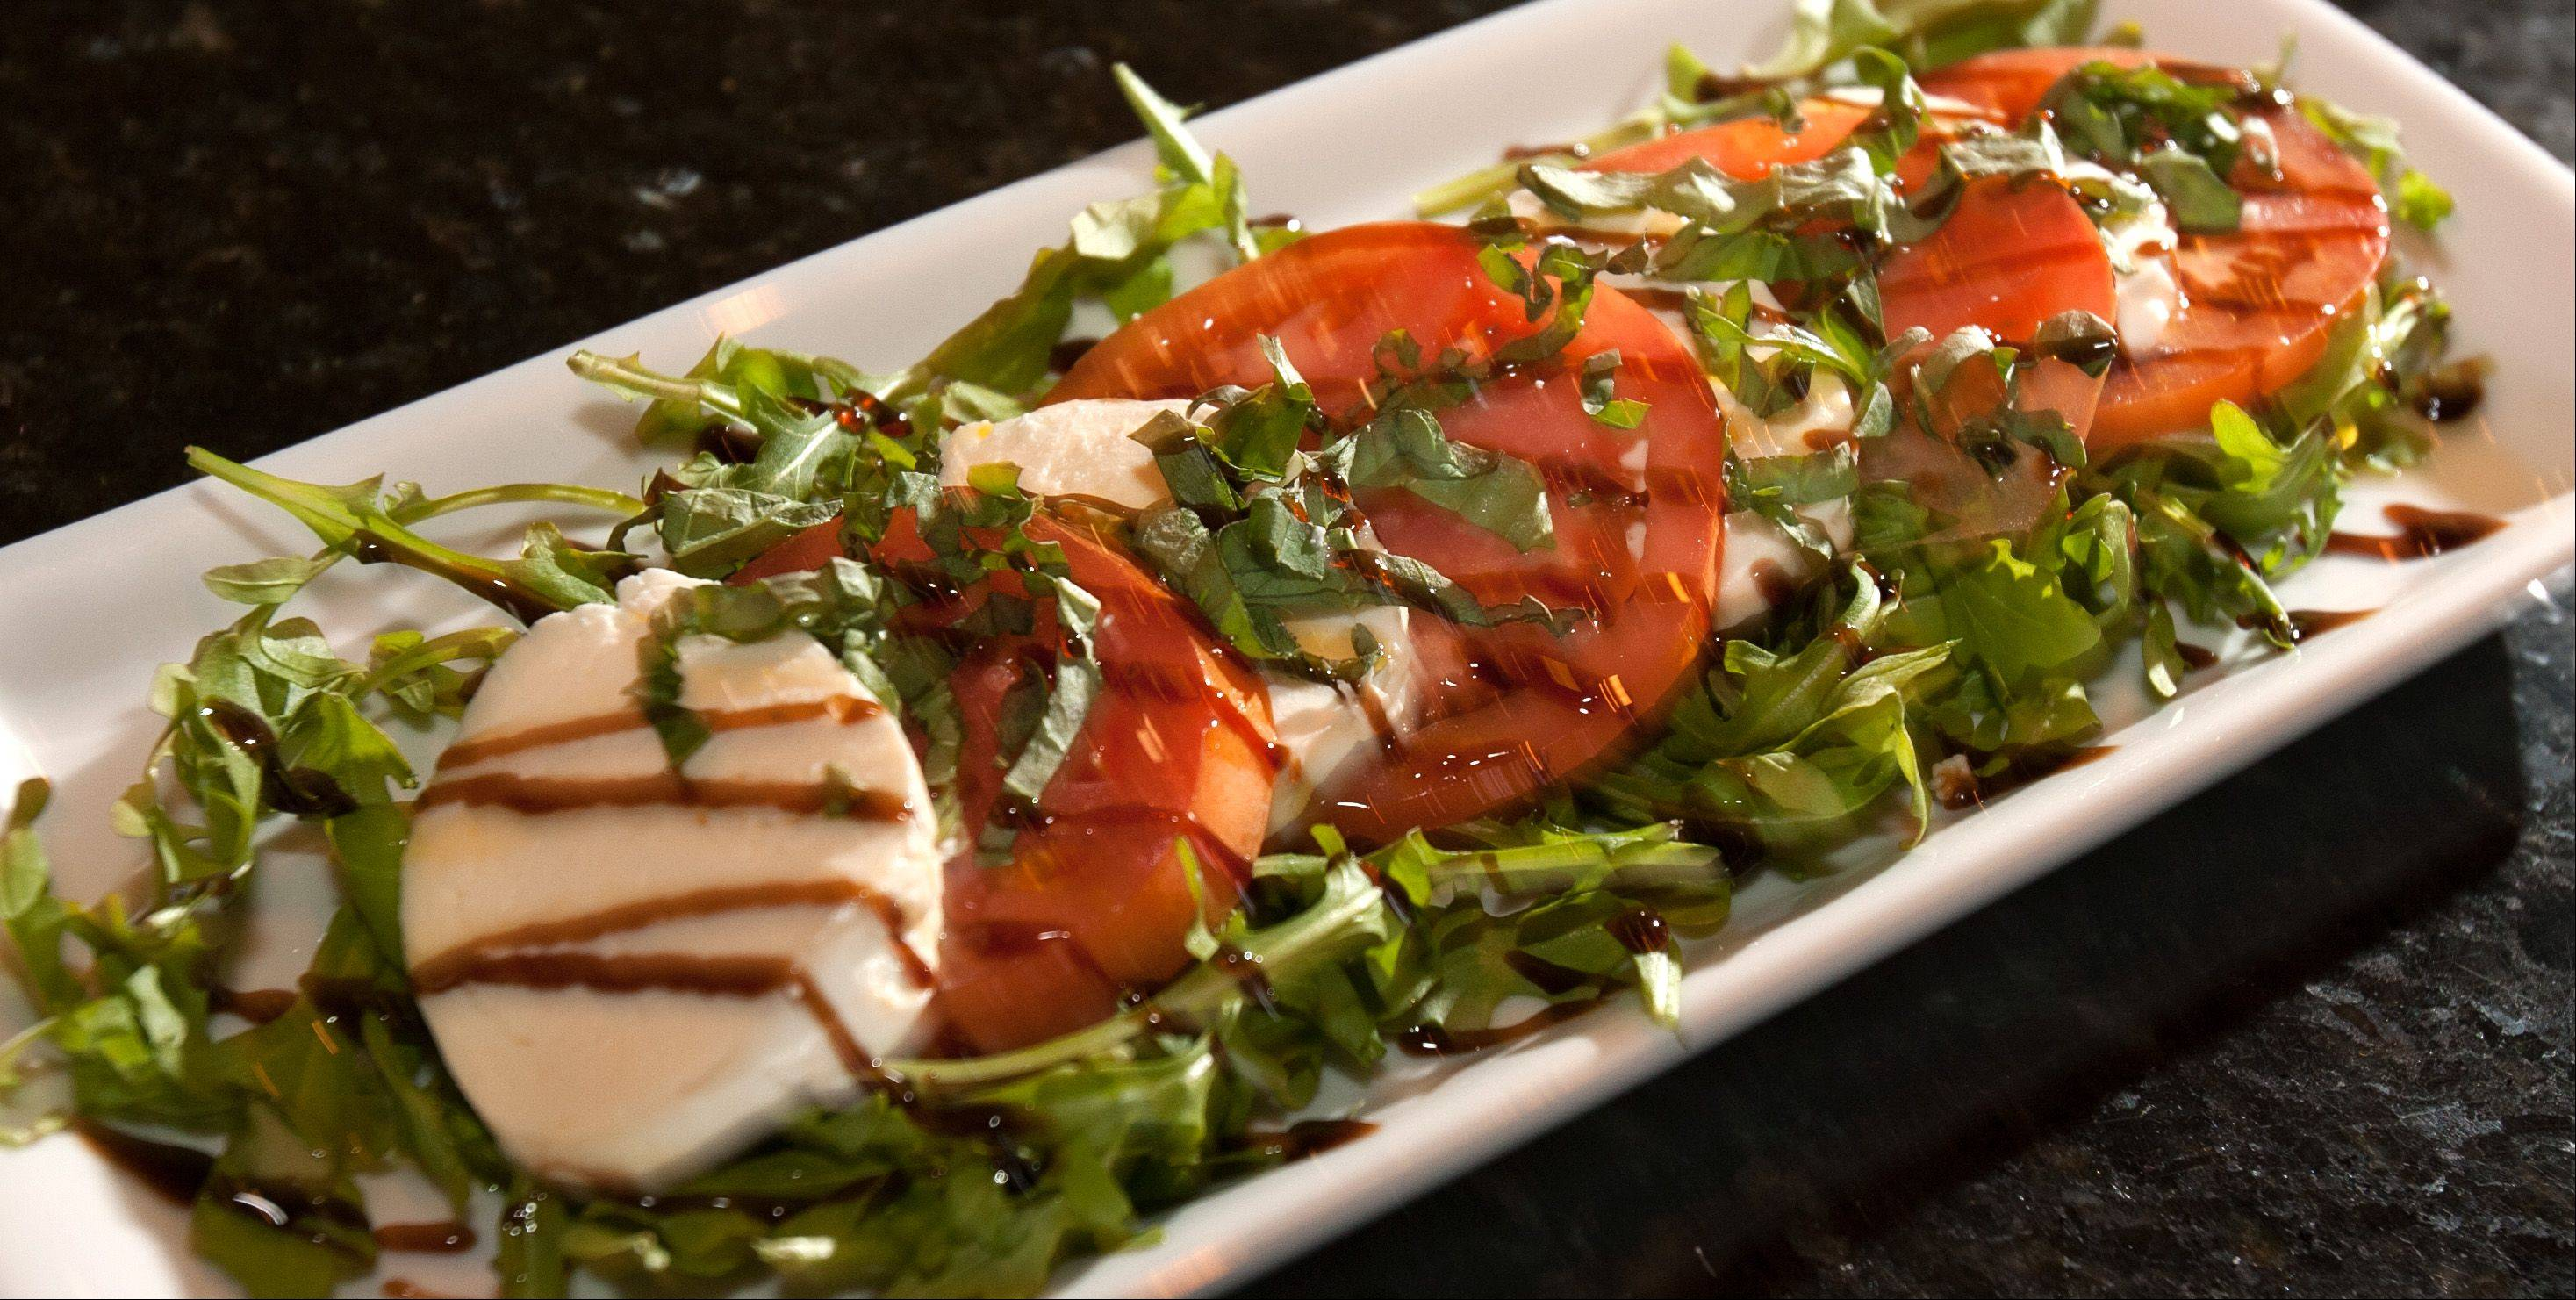 Fiamme's Caprese salad features fresh tomatoes, fresh mozzarella, balsamic reduction and basil.